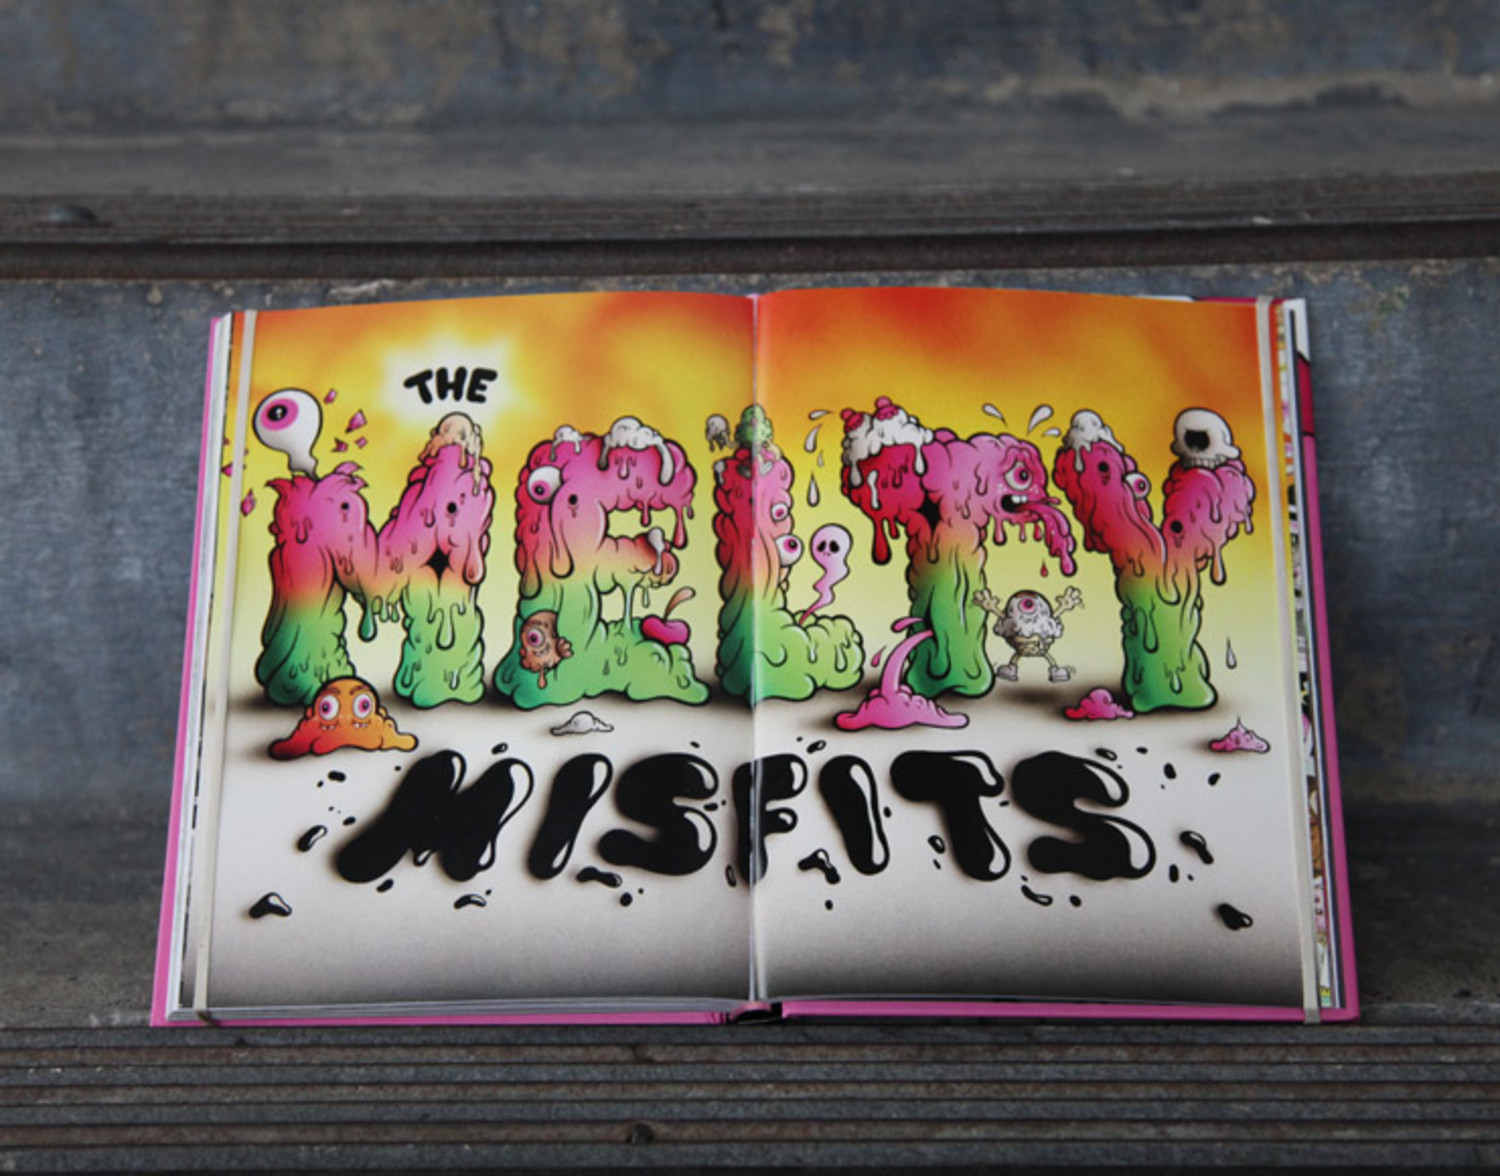 The melty misfits